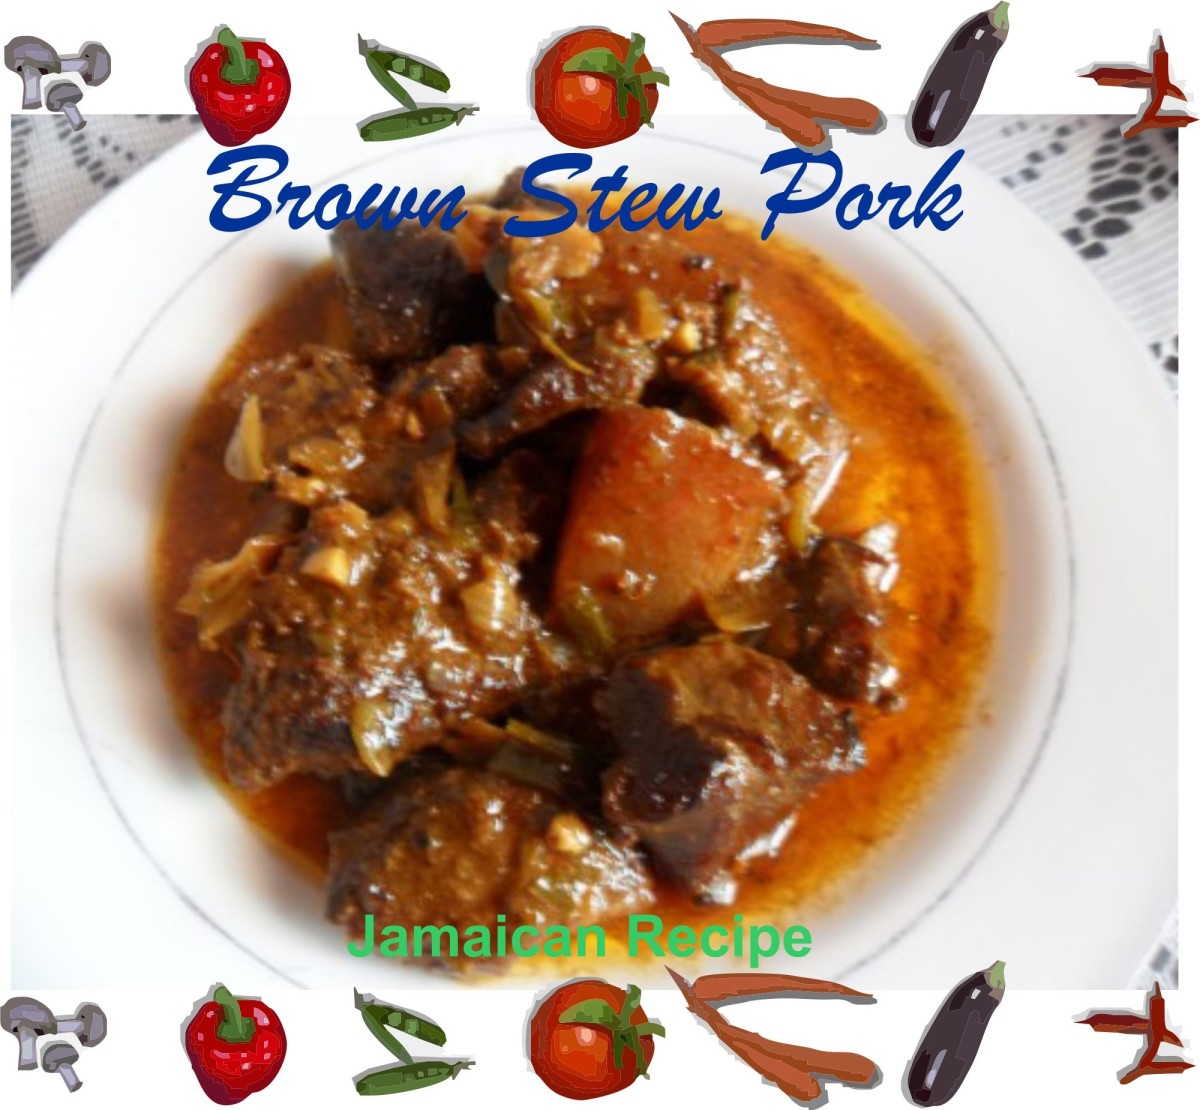 Photo of the Jamaican stewed pork.